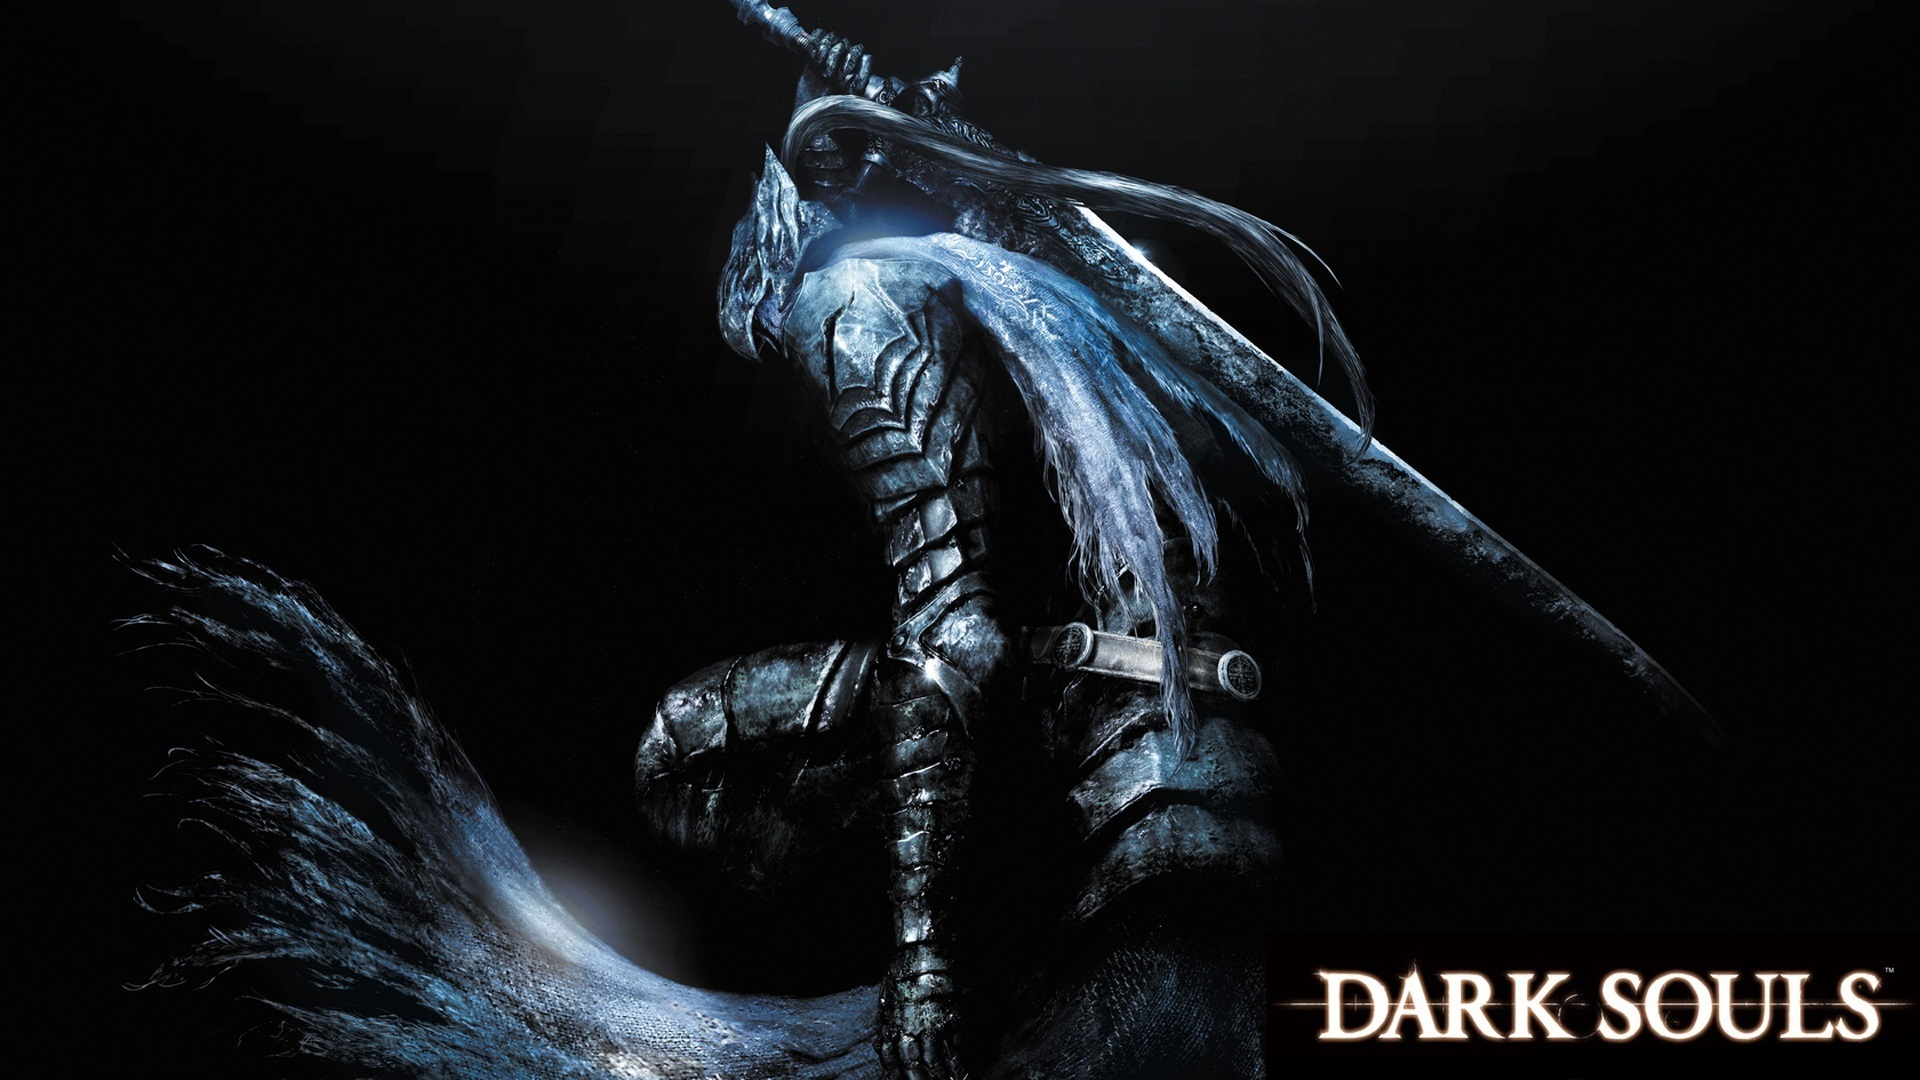 Dark Souls 2 Wallpaper Hd 5